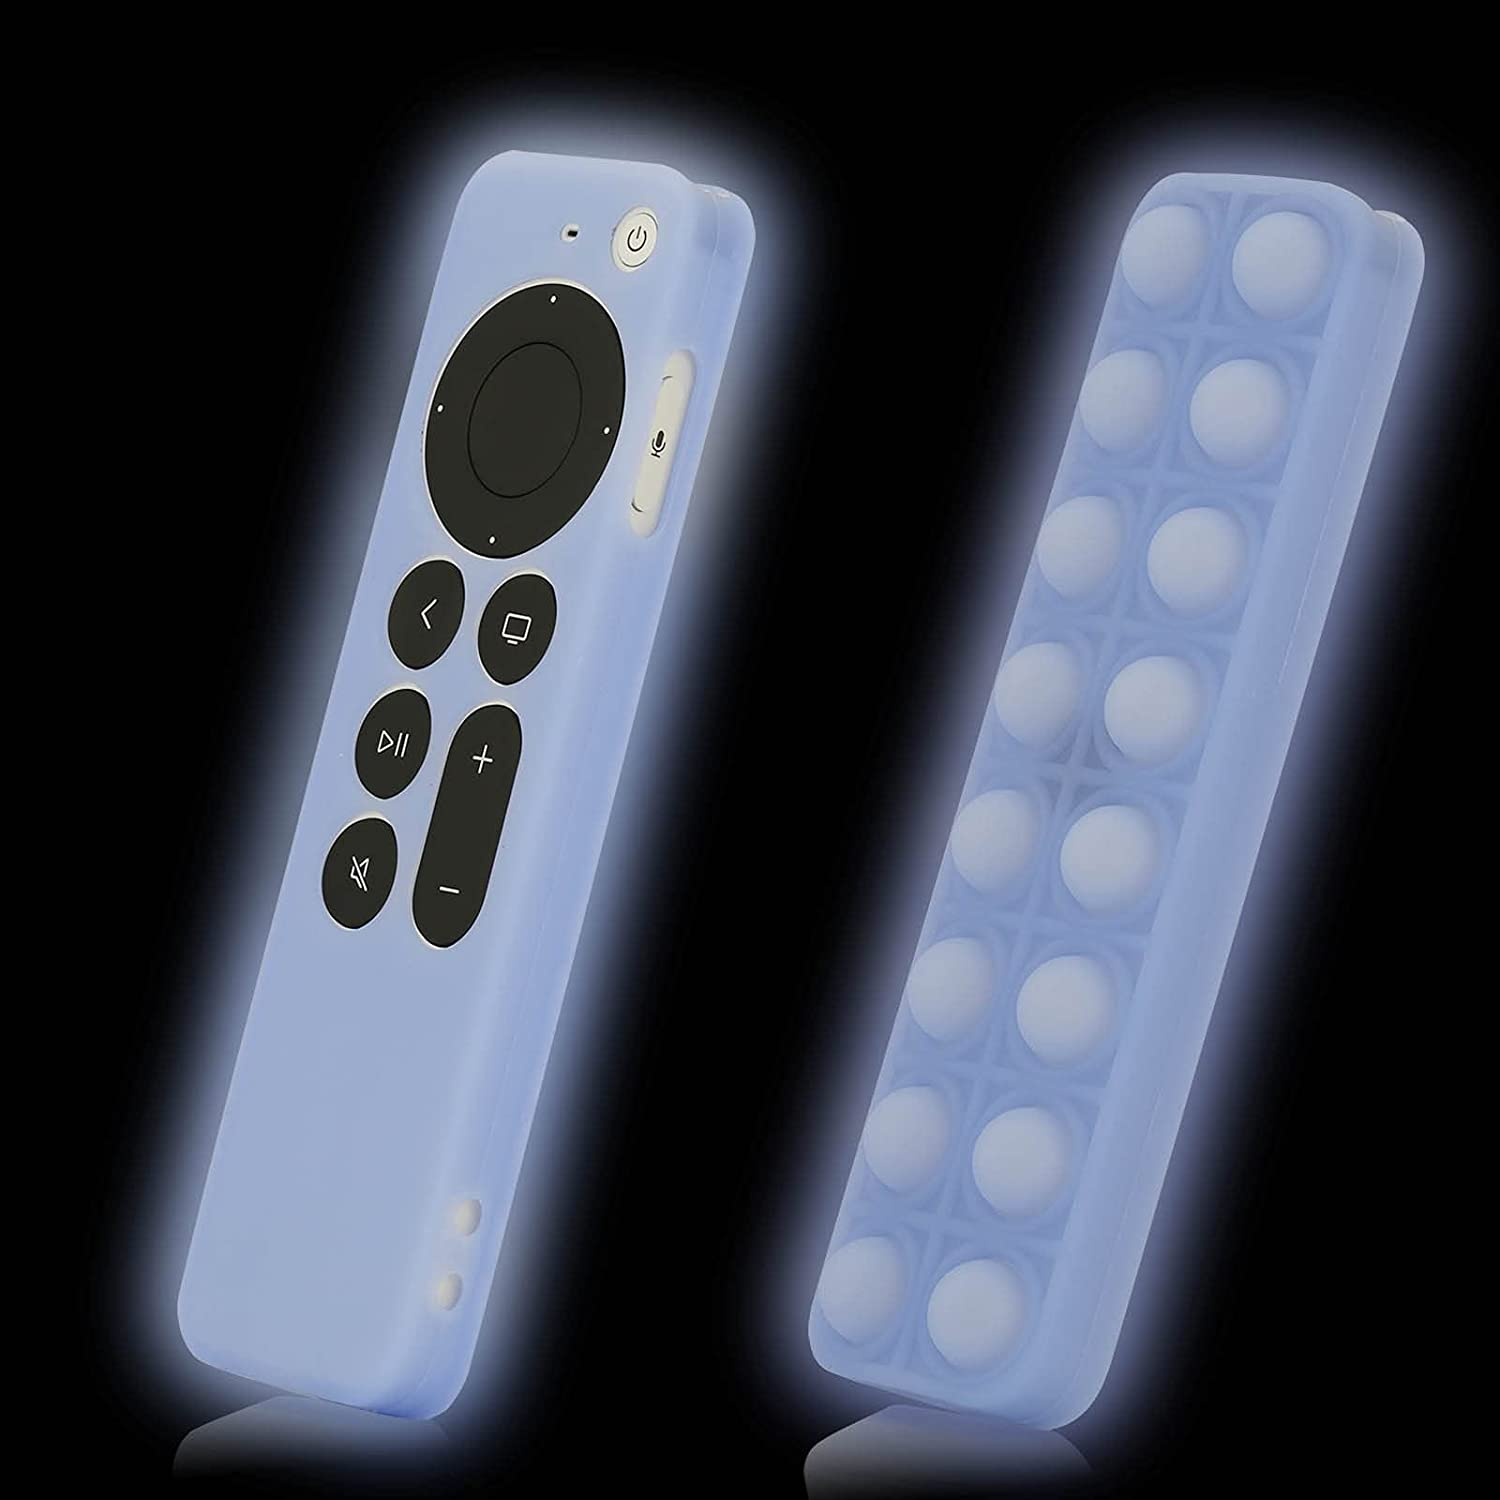 Blue Case Cover Replacement for New Apple 4k TV Box Series 6 Generation / 6th Gen 2021 Siri 2nd Remote, Silicone Skin Shockproof Protector Glow in Dark - LEFXMOPHY